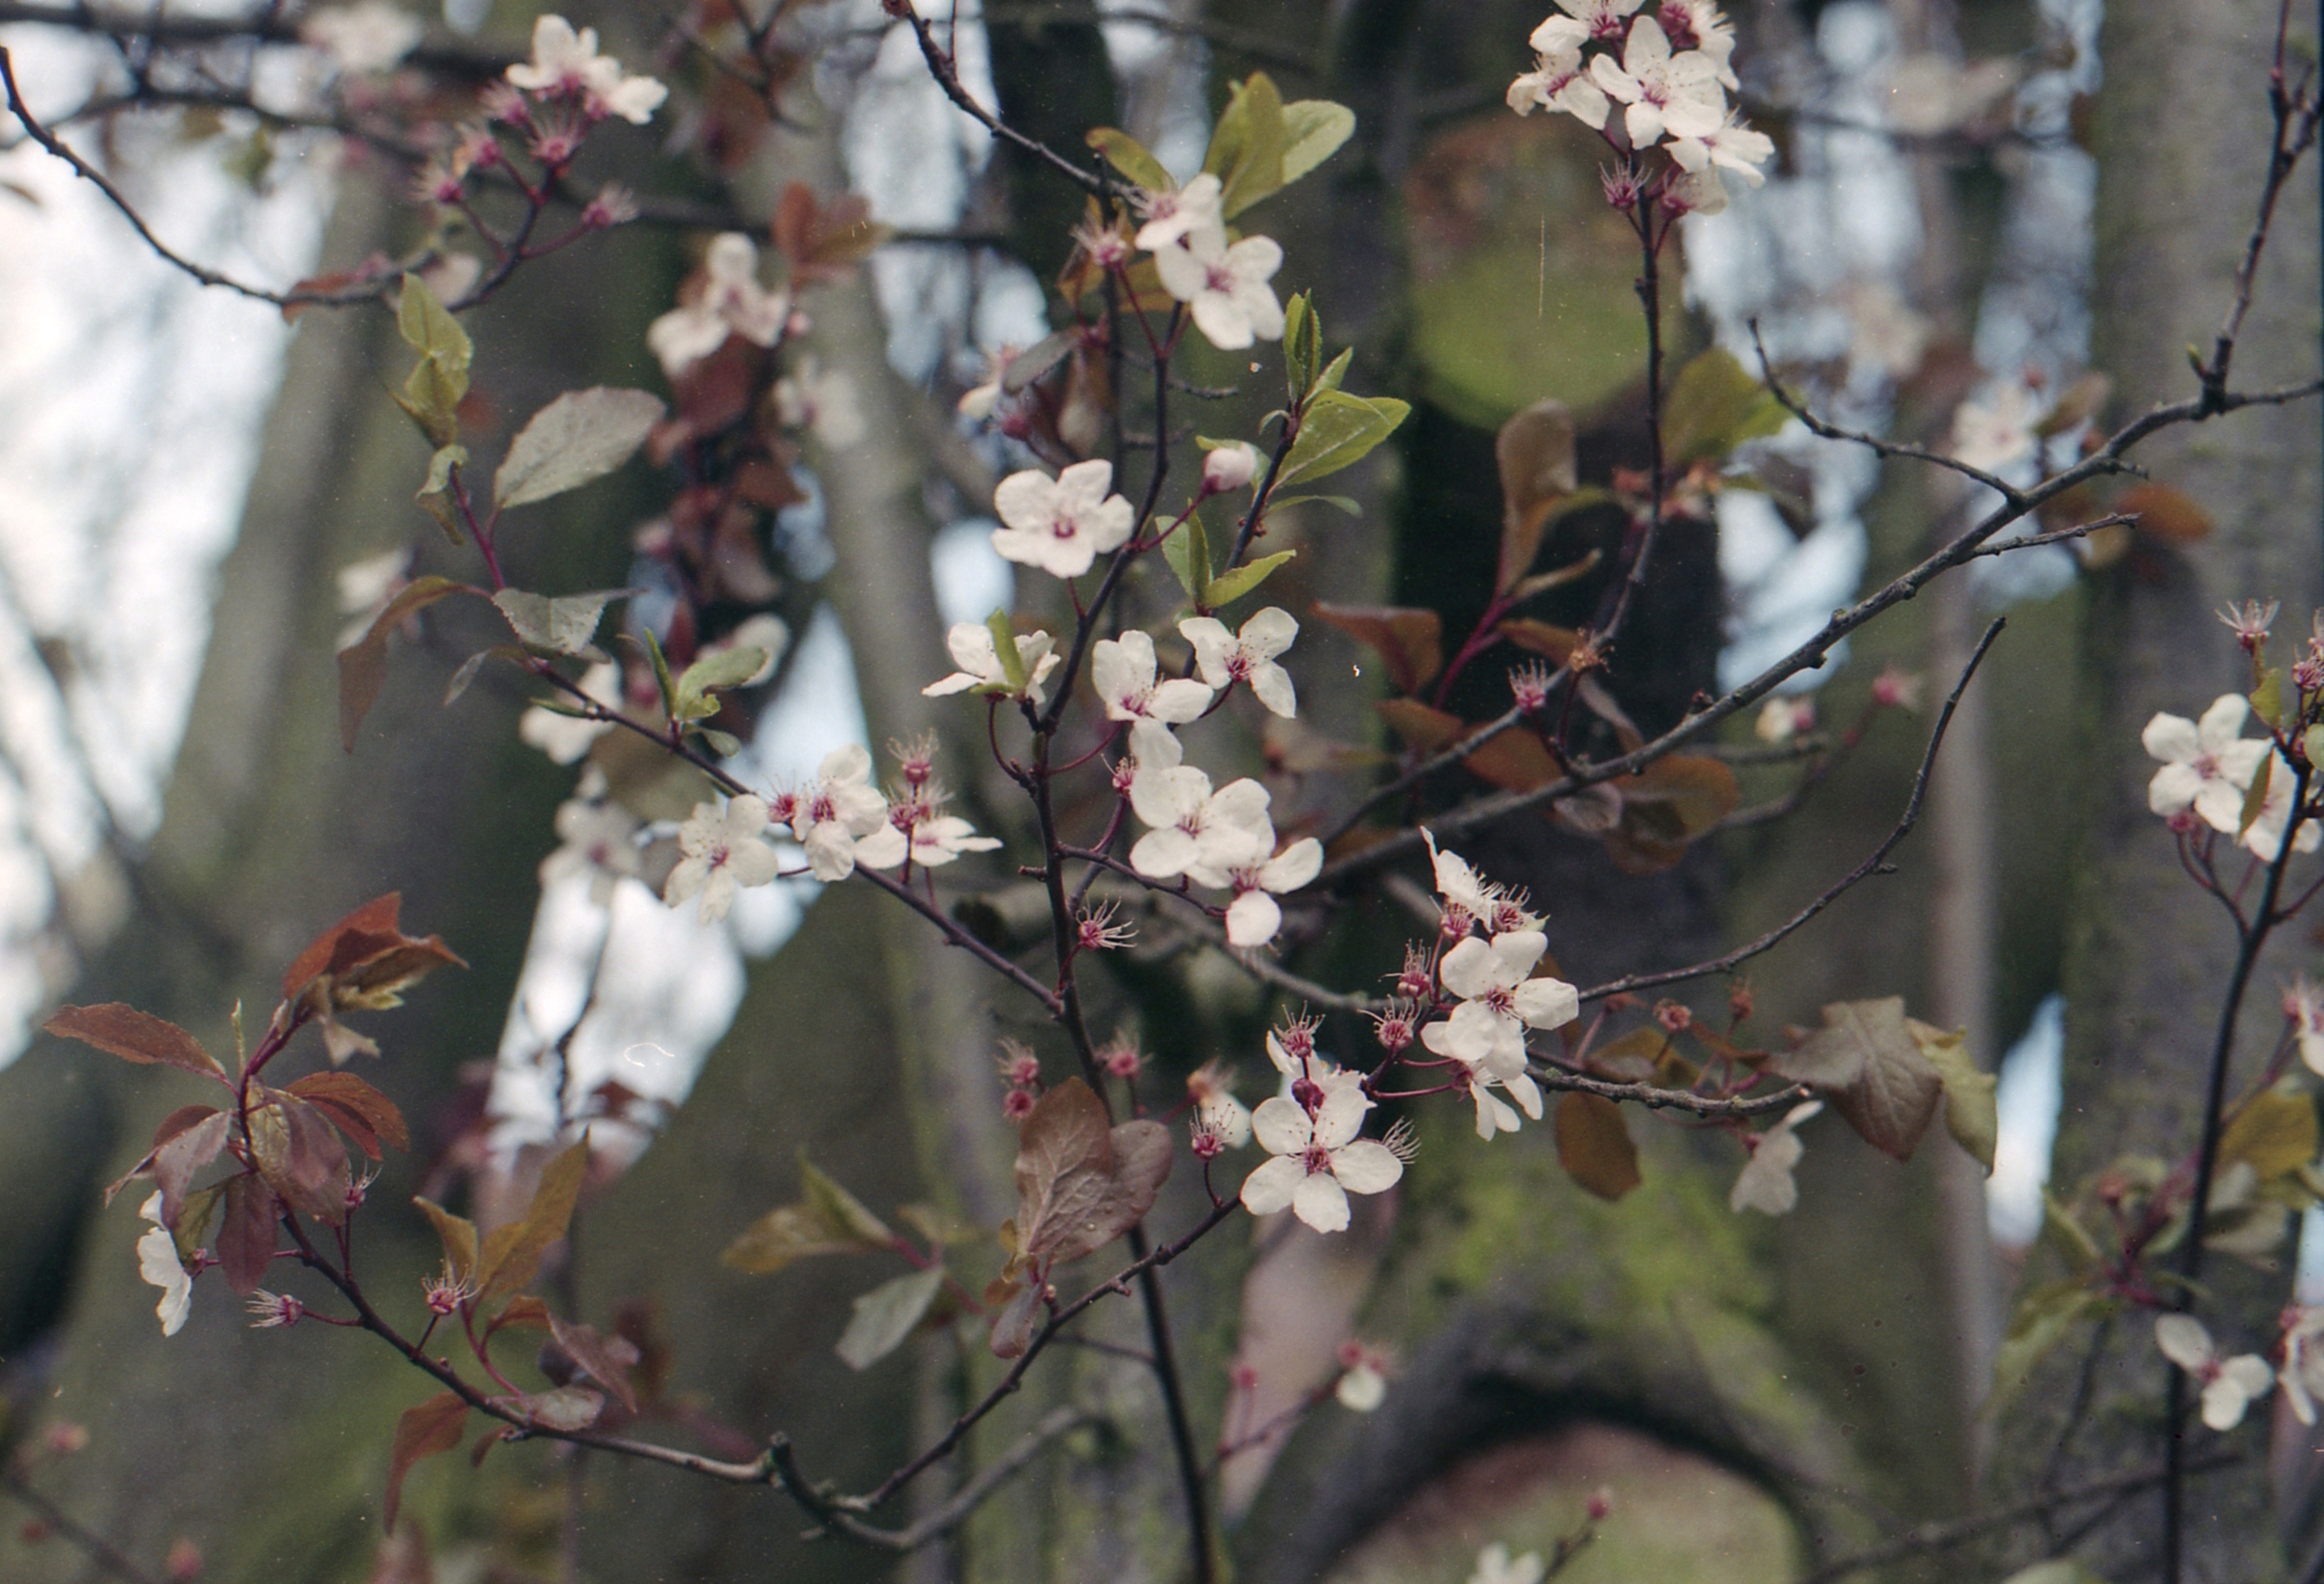 88/366 - Yeay blossom and its looking more like Spring everyday :)